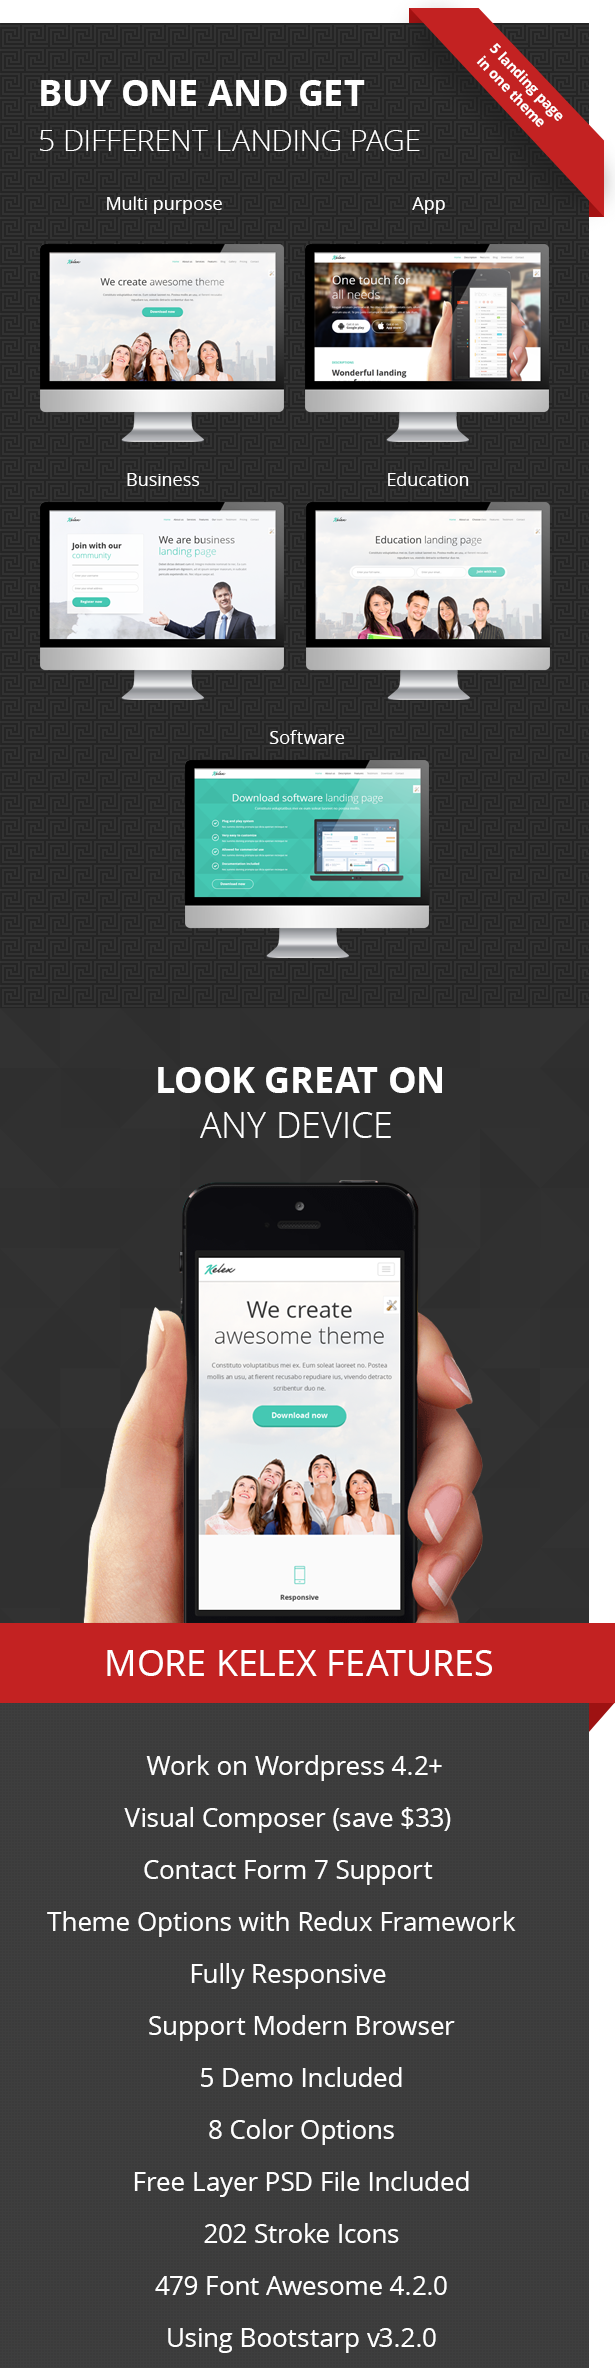 Kelex - Clean and Modern Landing Page WP Theme